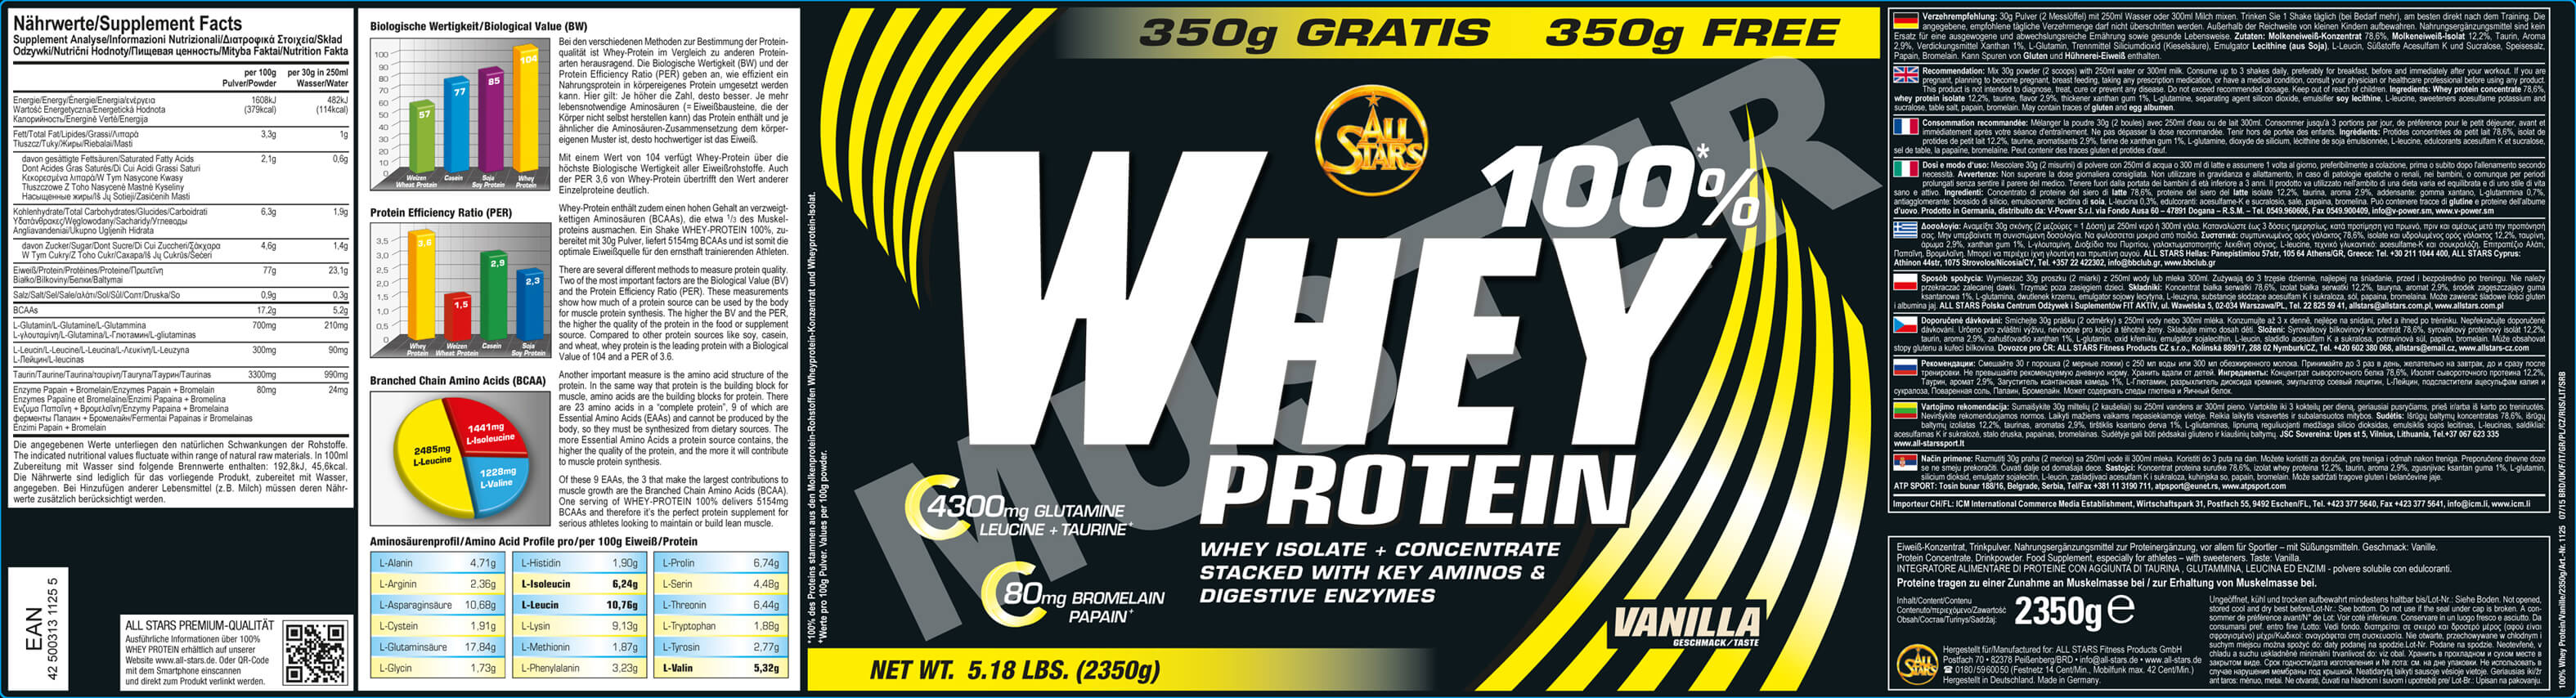 All Stars 100% Whey Protein Etikett